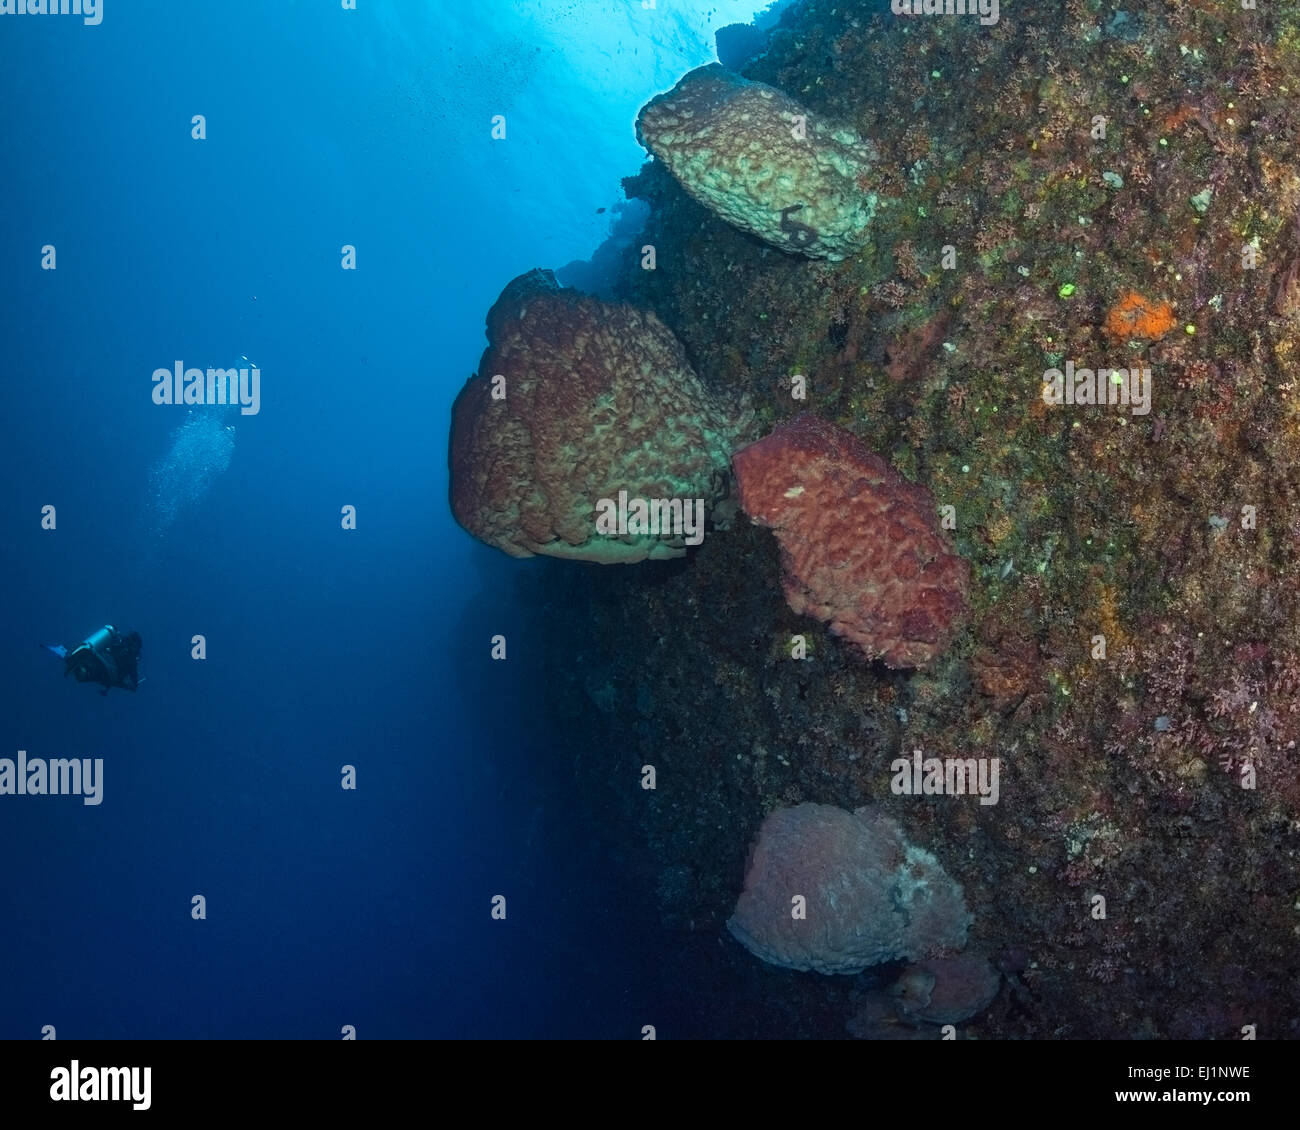 Scuba diver inspects large fluorescent barrel sponges on wall reef. Spratly Islands, South China Sea. - Stock Image